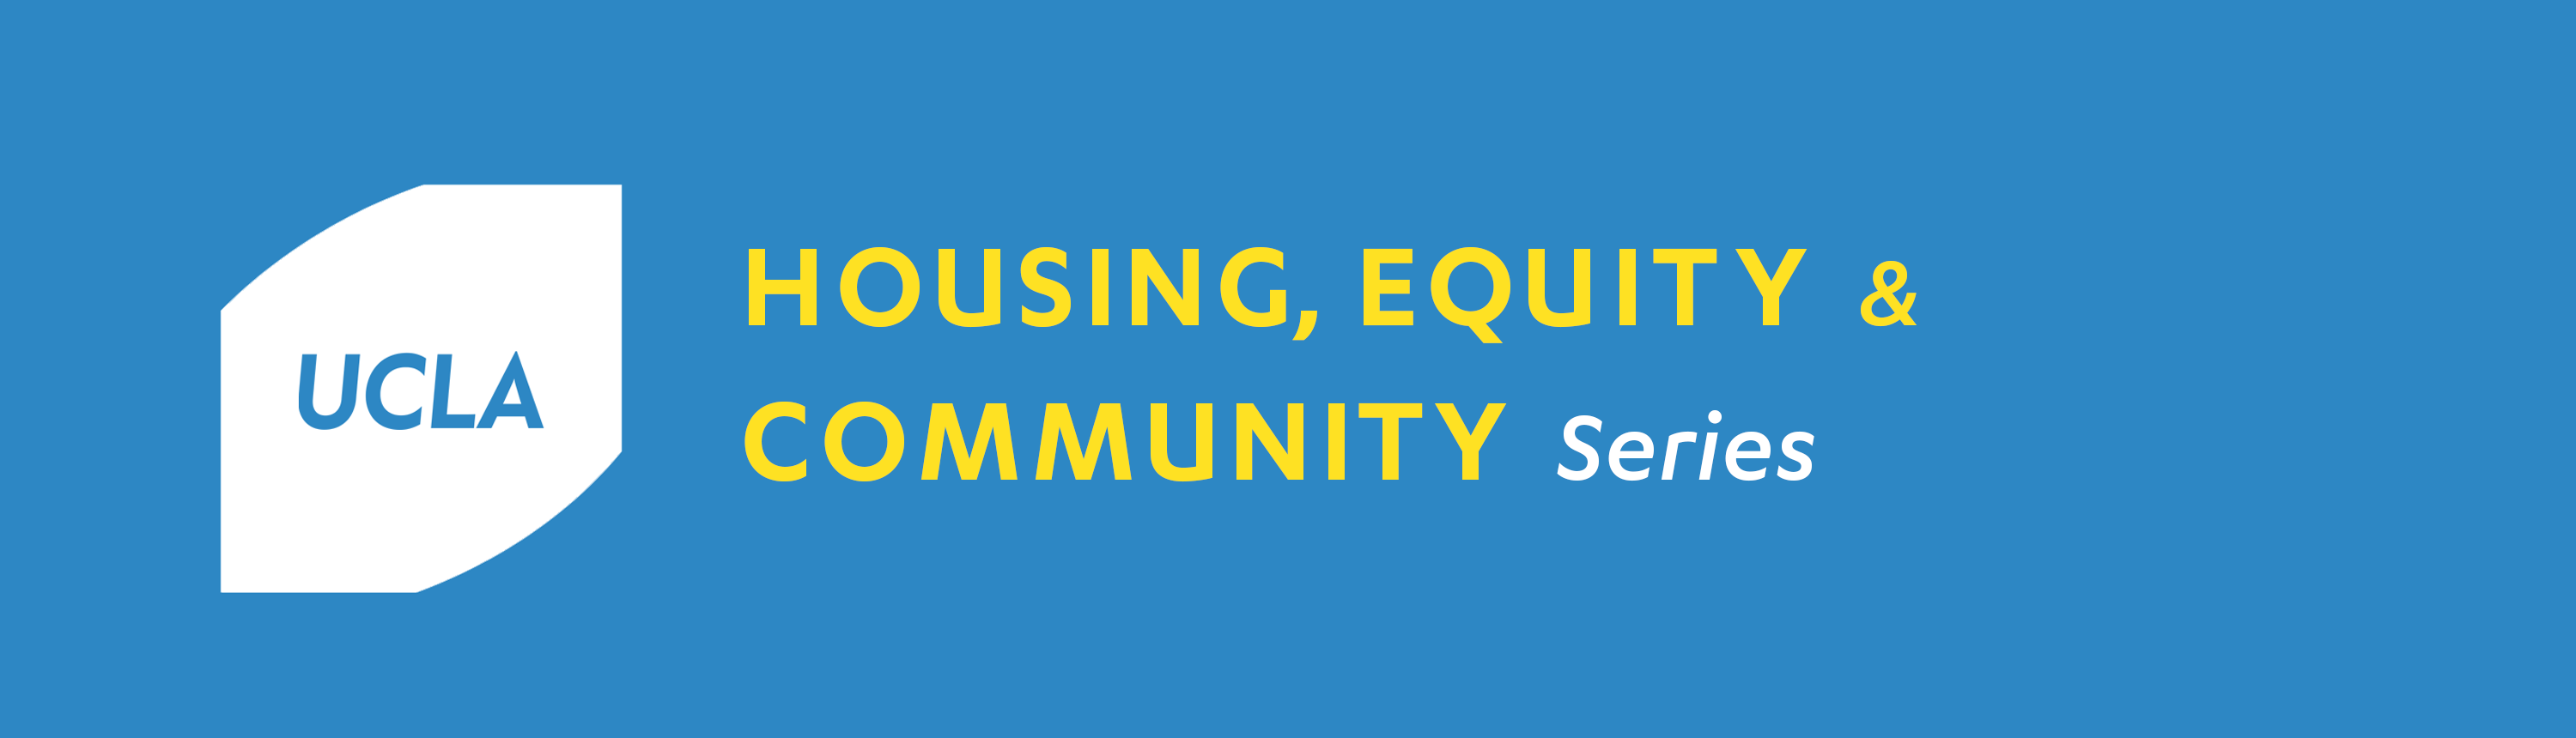 Videos: 2017-18 Housing, Equity, and Community Series